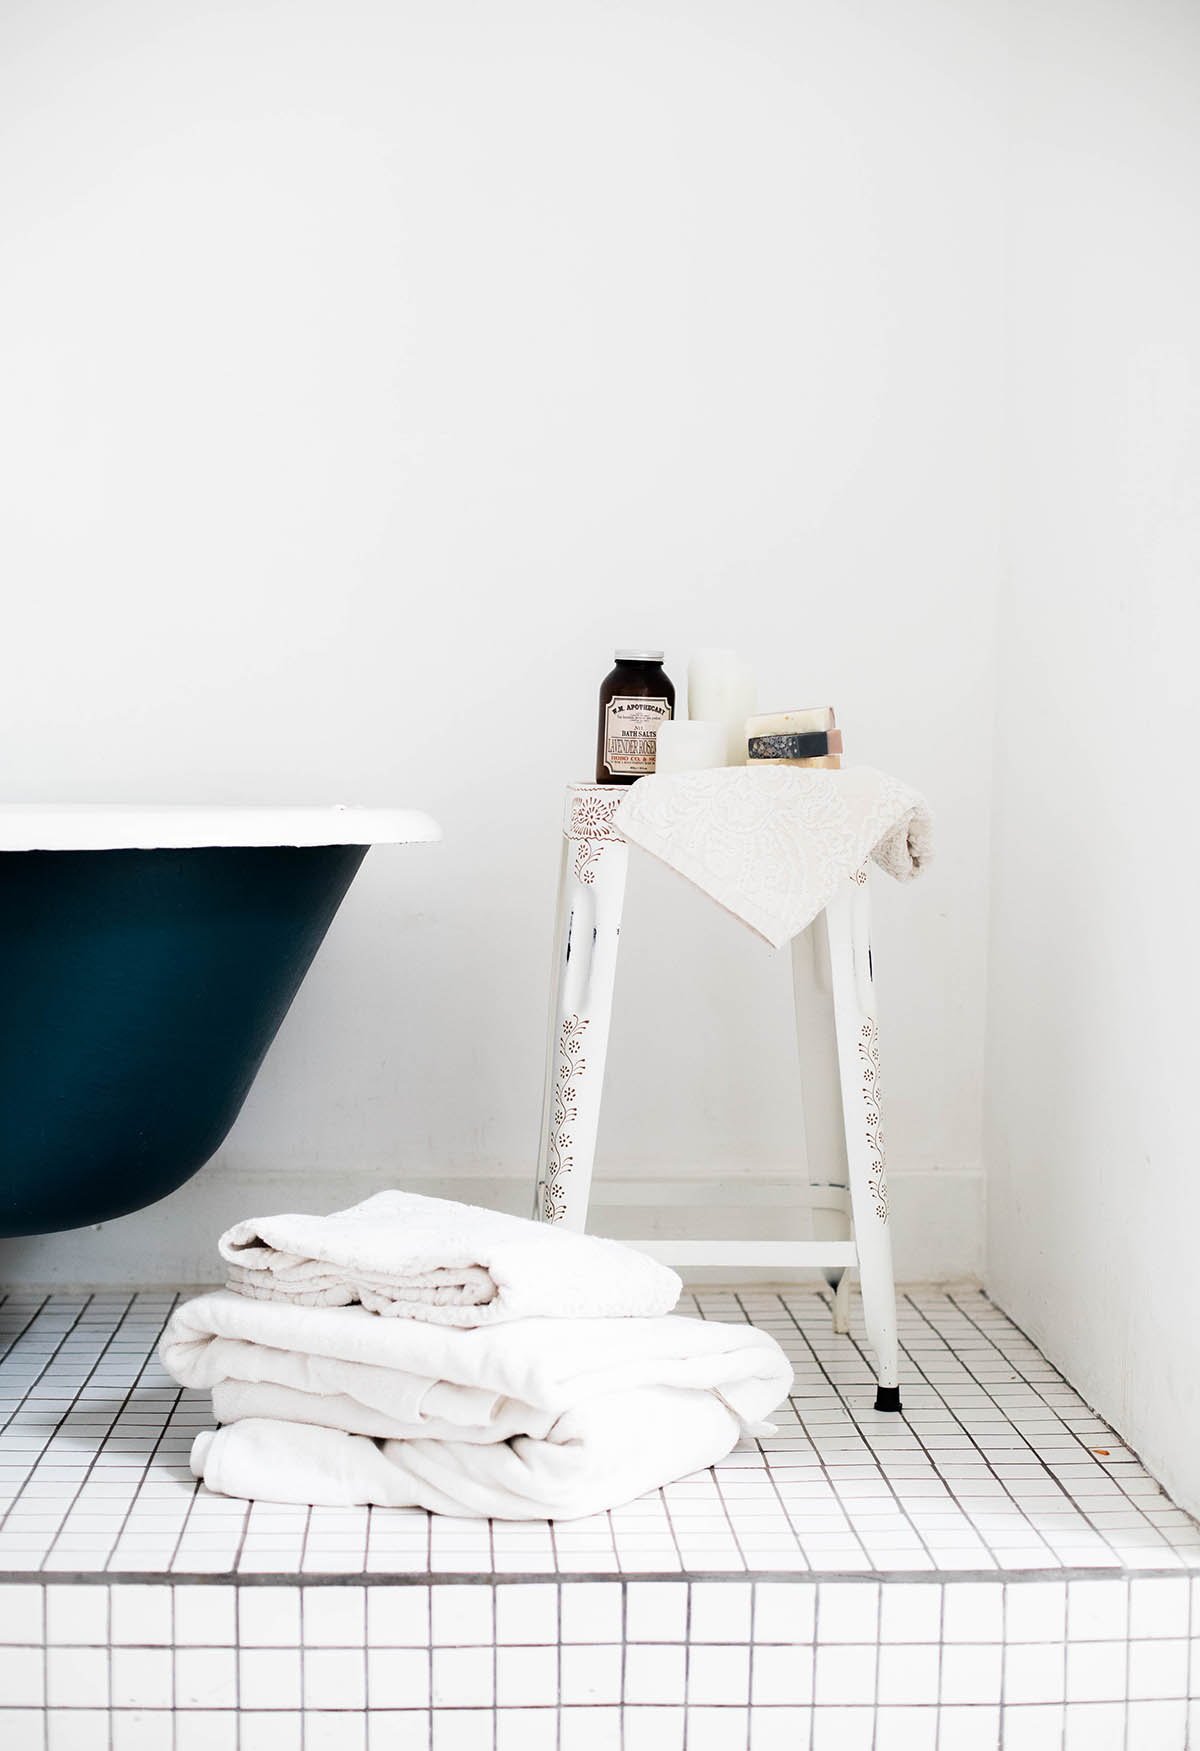 white bathroom with clawfoot tub and stool